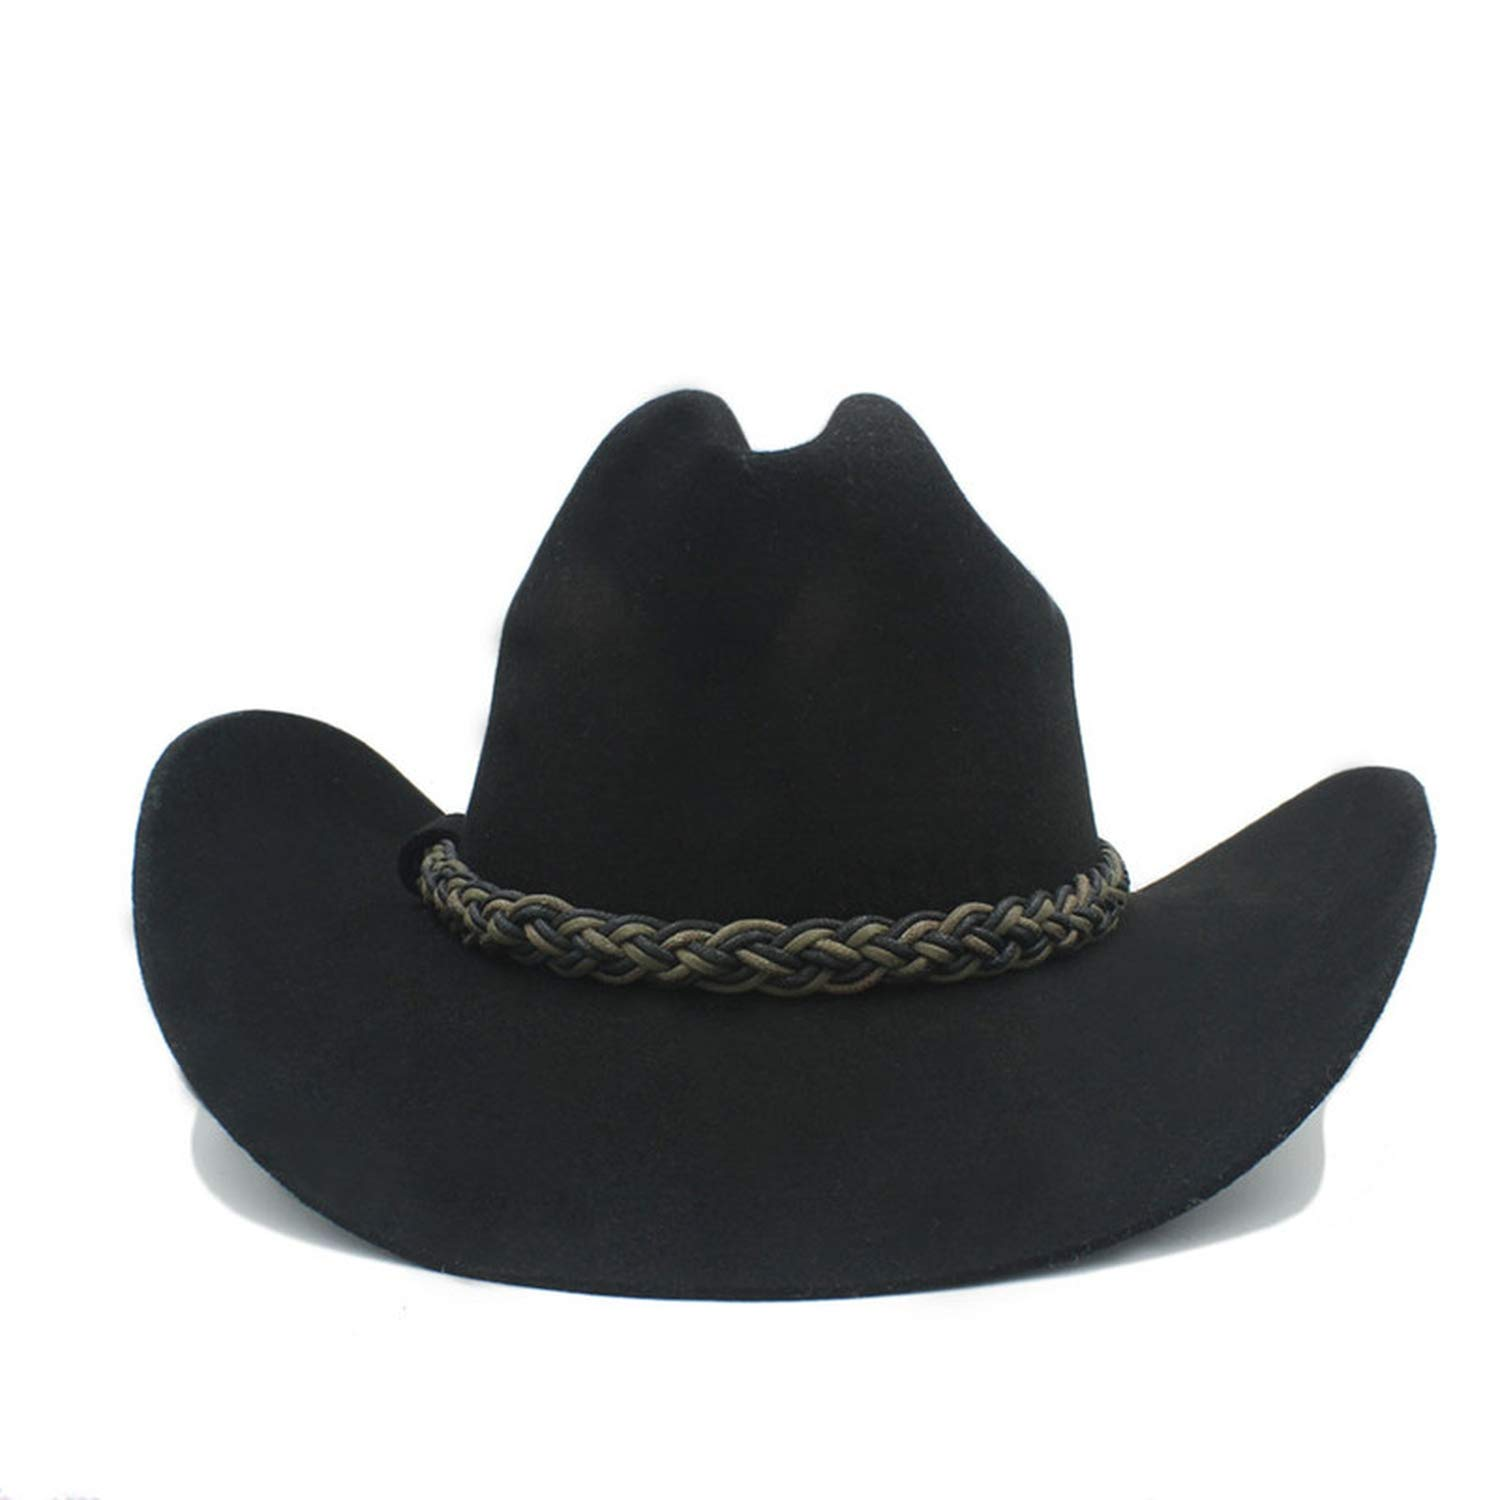 MingDe Sports 100/% Australia Wool Women Men Black Western Cowboy Hat Cowgirl Jazz Sombrero Cap